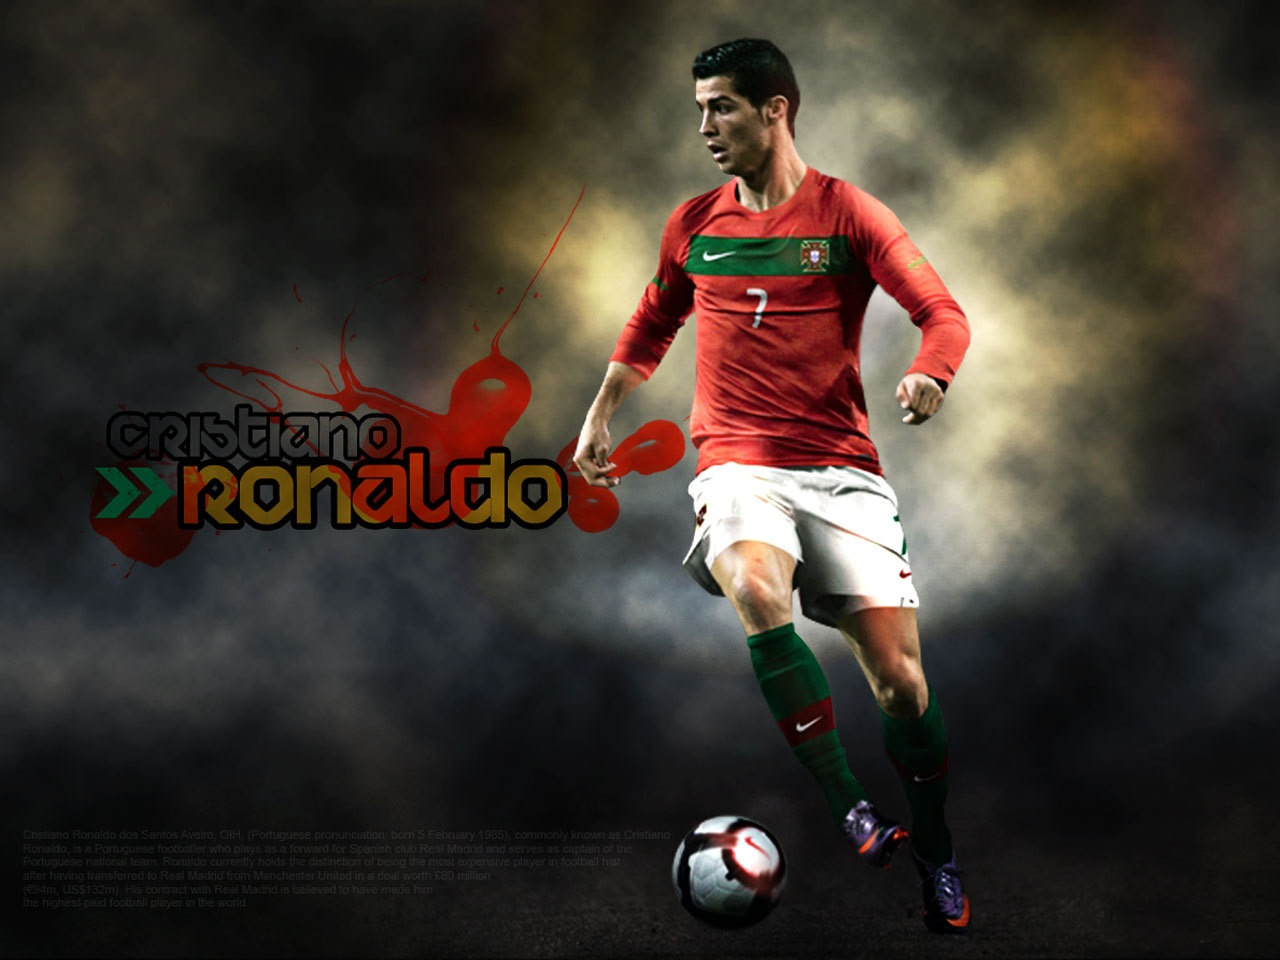 Cristiano Ronaldo HD Wallpapers 2012-2013